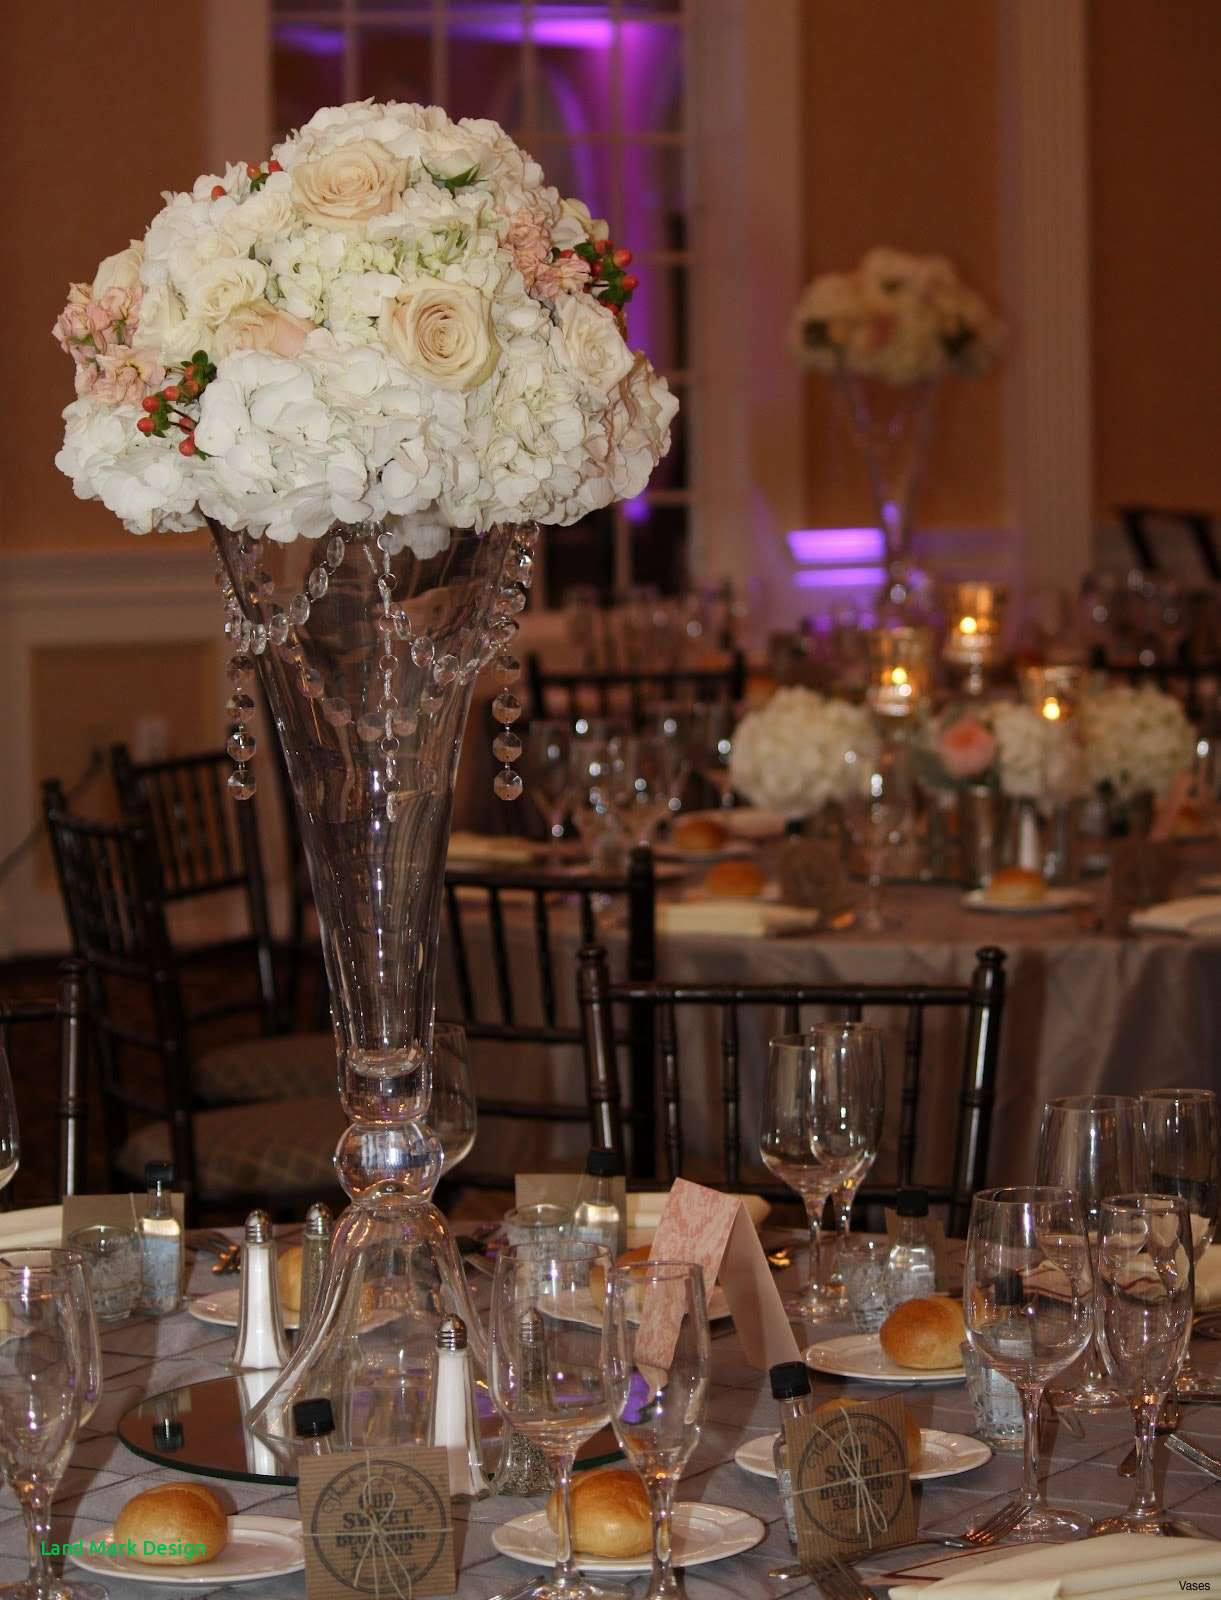 30 Famous Glass Vases for Weddings 2021 free download glass vases for weddings of interesting centerpieces design home design throughout vases wedding centerpiece cheap tall vase centerpieces reception table with amazing glass i 0d